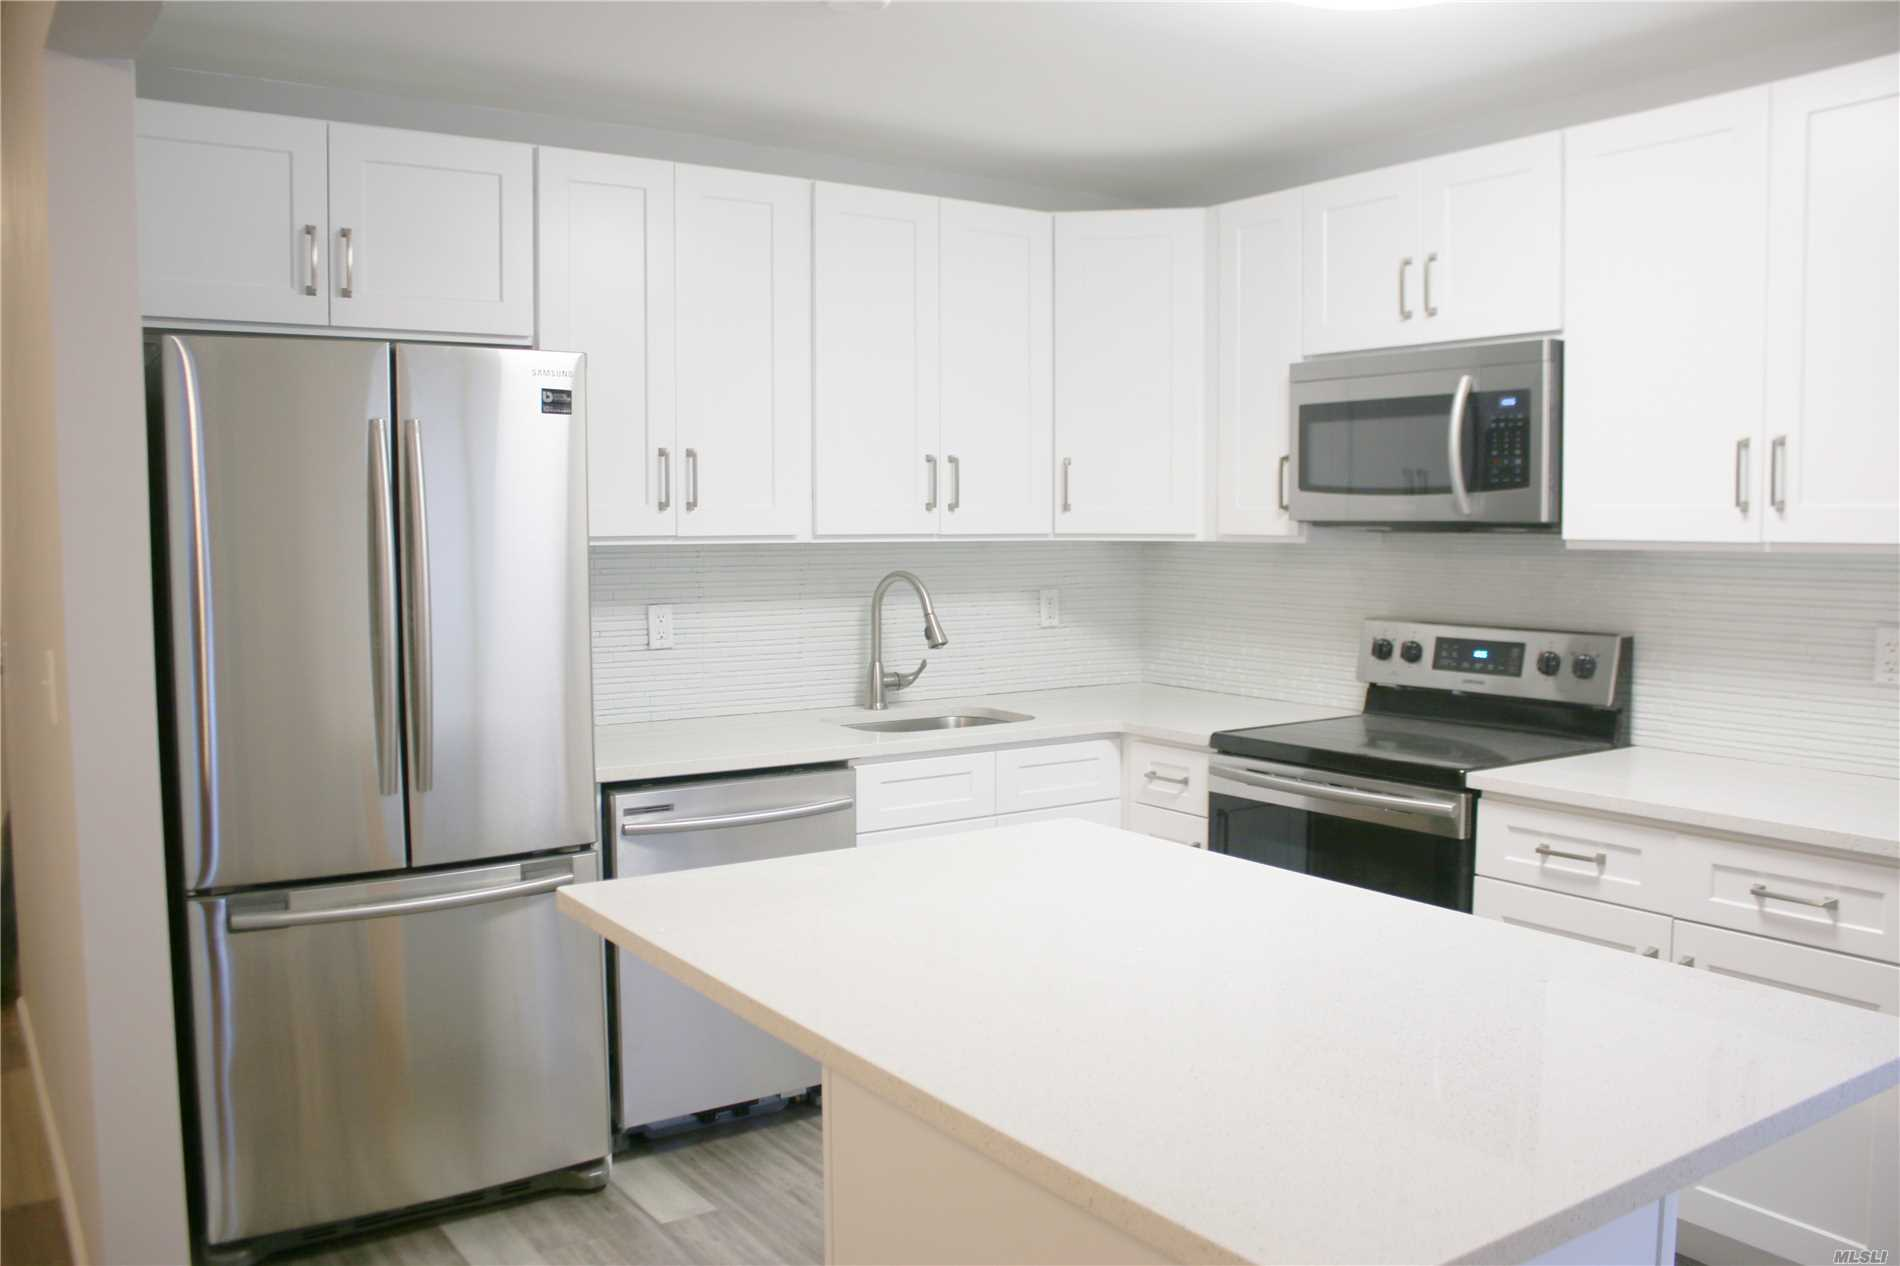 All New! Tranquil & Private Village Retreat: open & airy, fully updated & upgraded main floor Unit (no stairs) welcomes you w/an open floor plan, large living space w/walk out private patio, opens to formal dining room & new eat-in kitchen w/quartz island. King-size bedroom inc. multiple closets/large walk in. Unit boasts plenty of sunlight, abundant storage, new bath, In-suite Washer/Dryer hookup, private parking spot & private outdoor storage. Walk to village, LIRR, Bethpage Park.